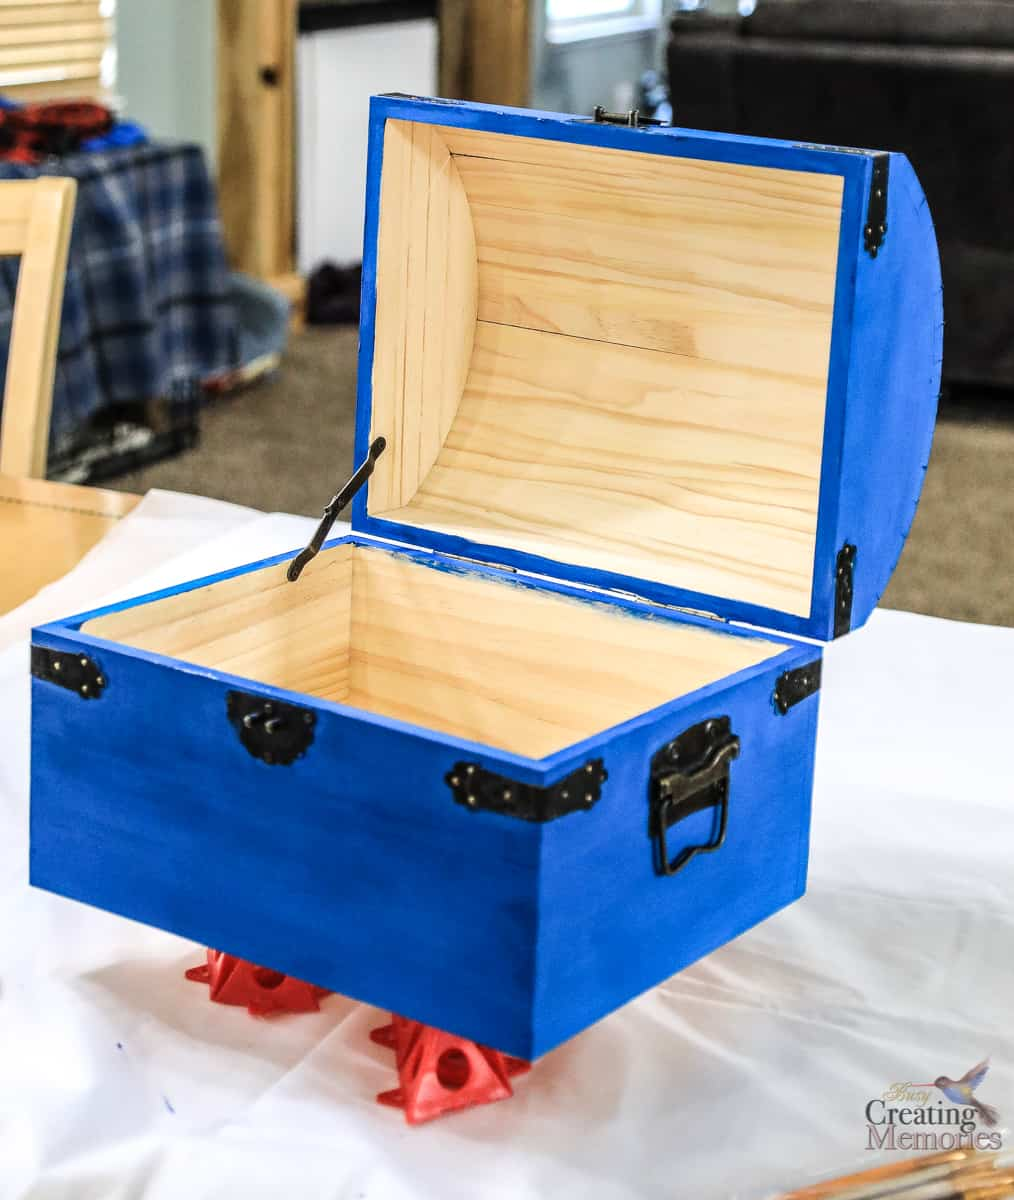 How to make a treasure chest out of a plastic box — pic 1